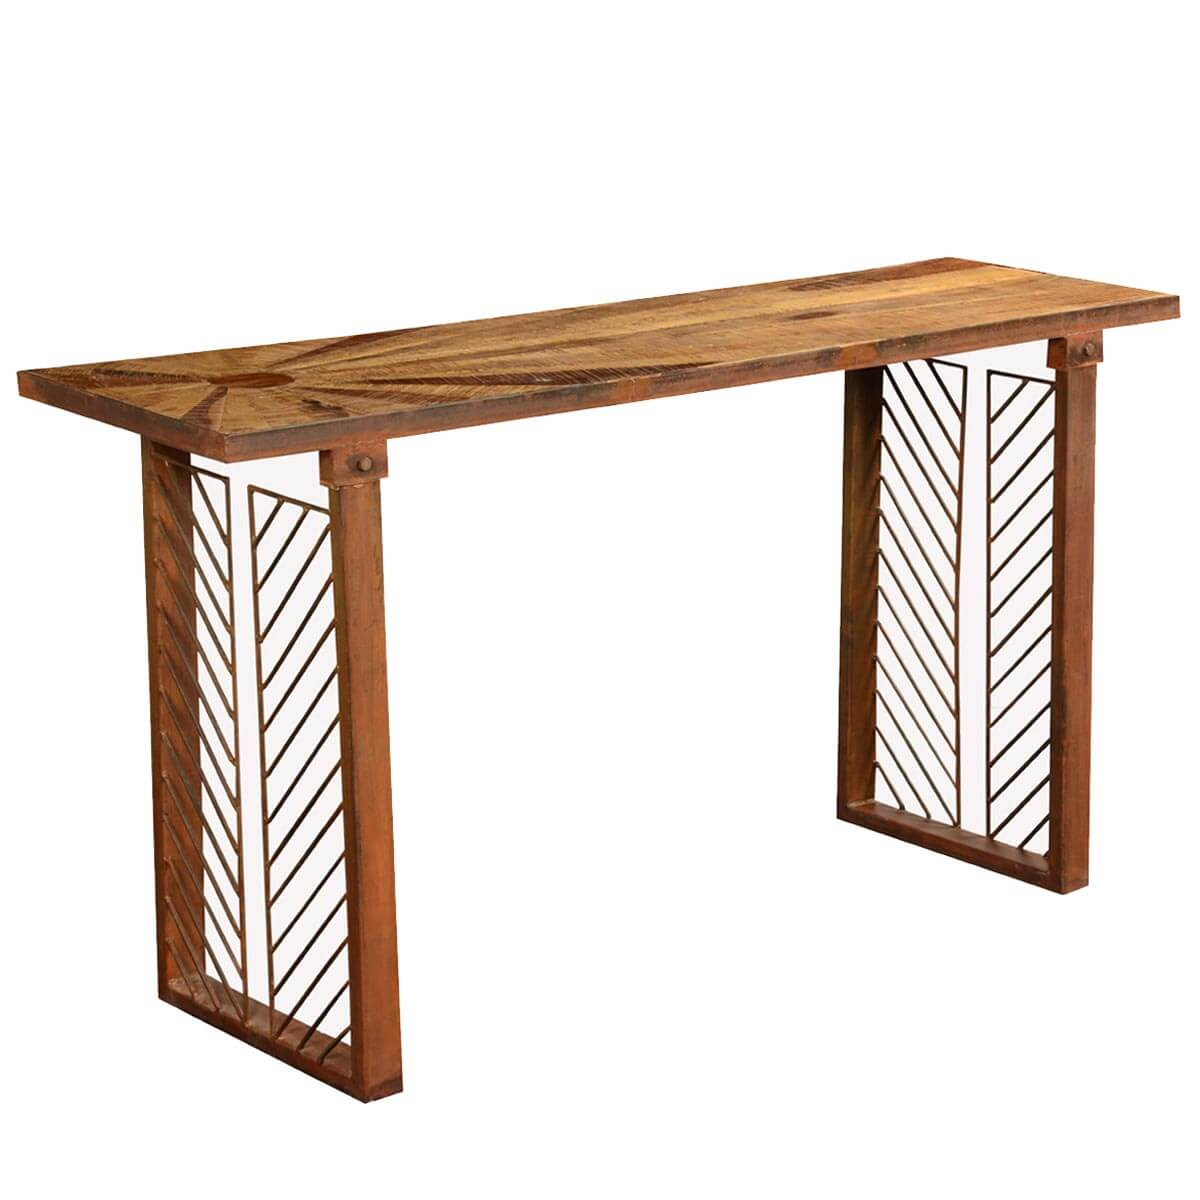 Contemporary Sunburst Reclaimed Wood & Iron Hall Console Table